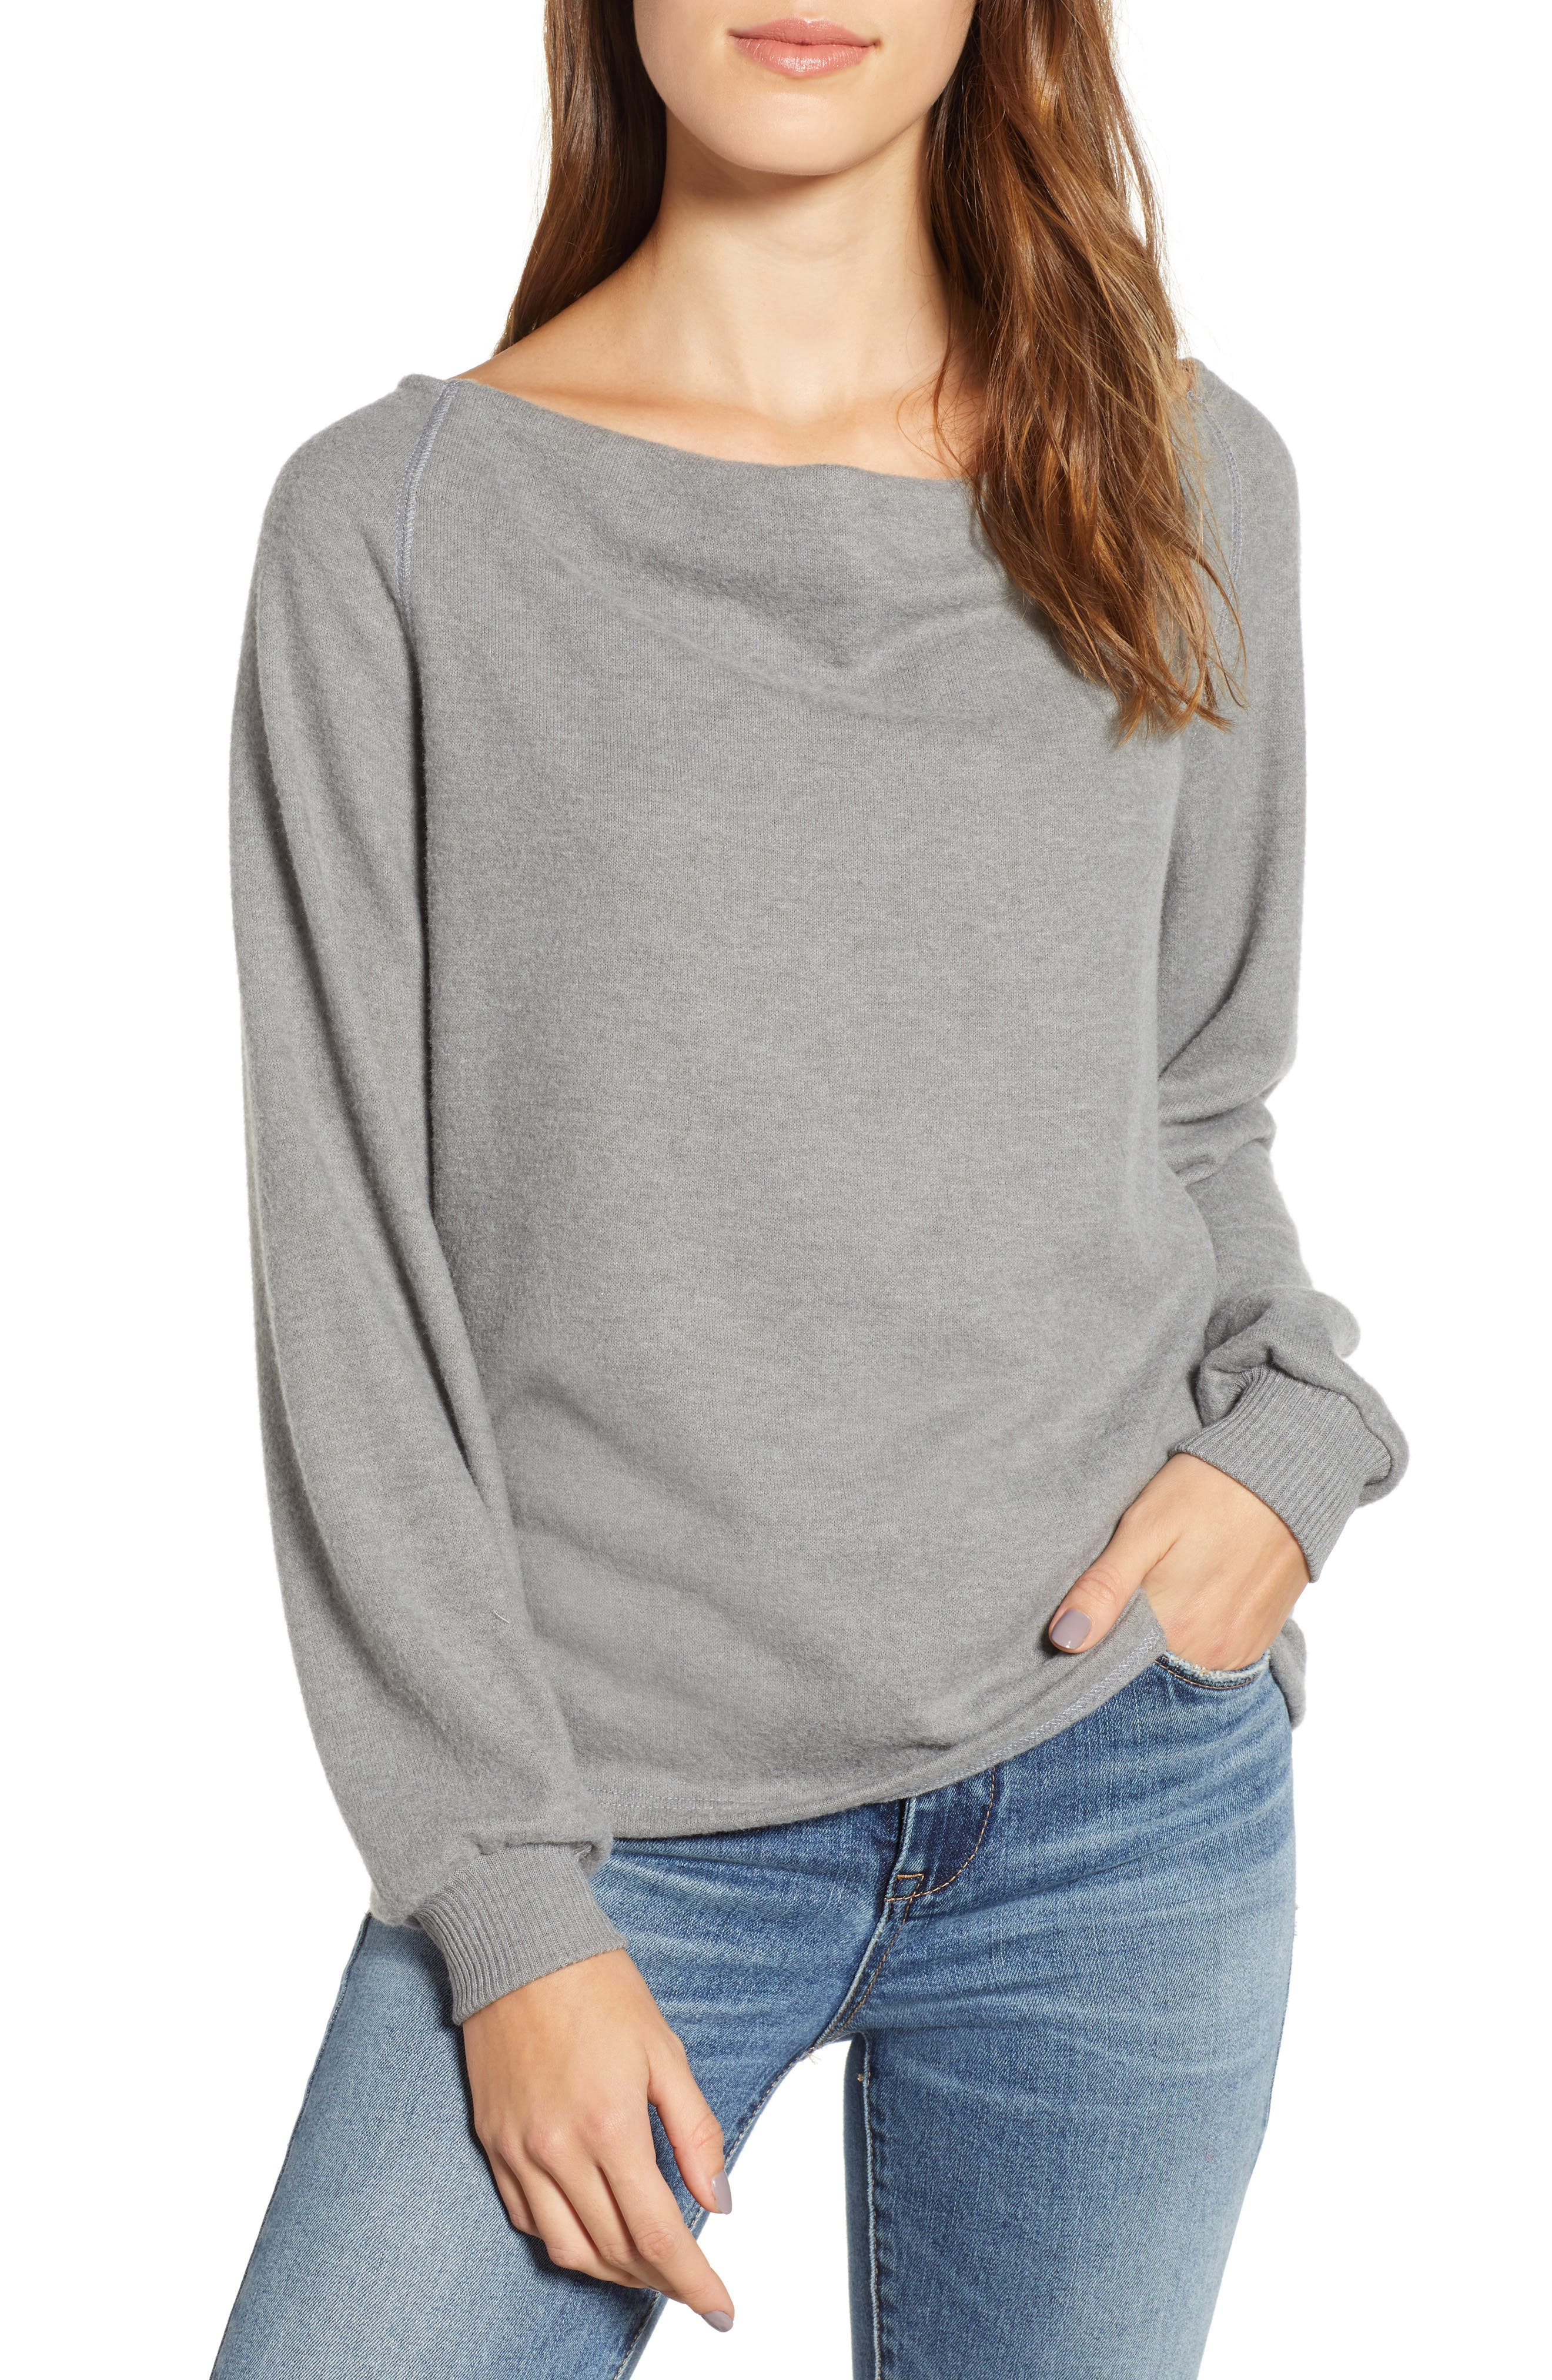 PROJECT SOCIAL T Elm Knit Cowl Neck Top in Eiffel Tower